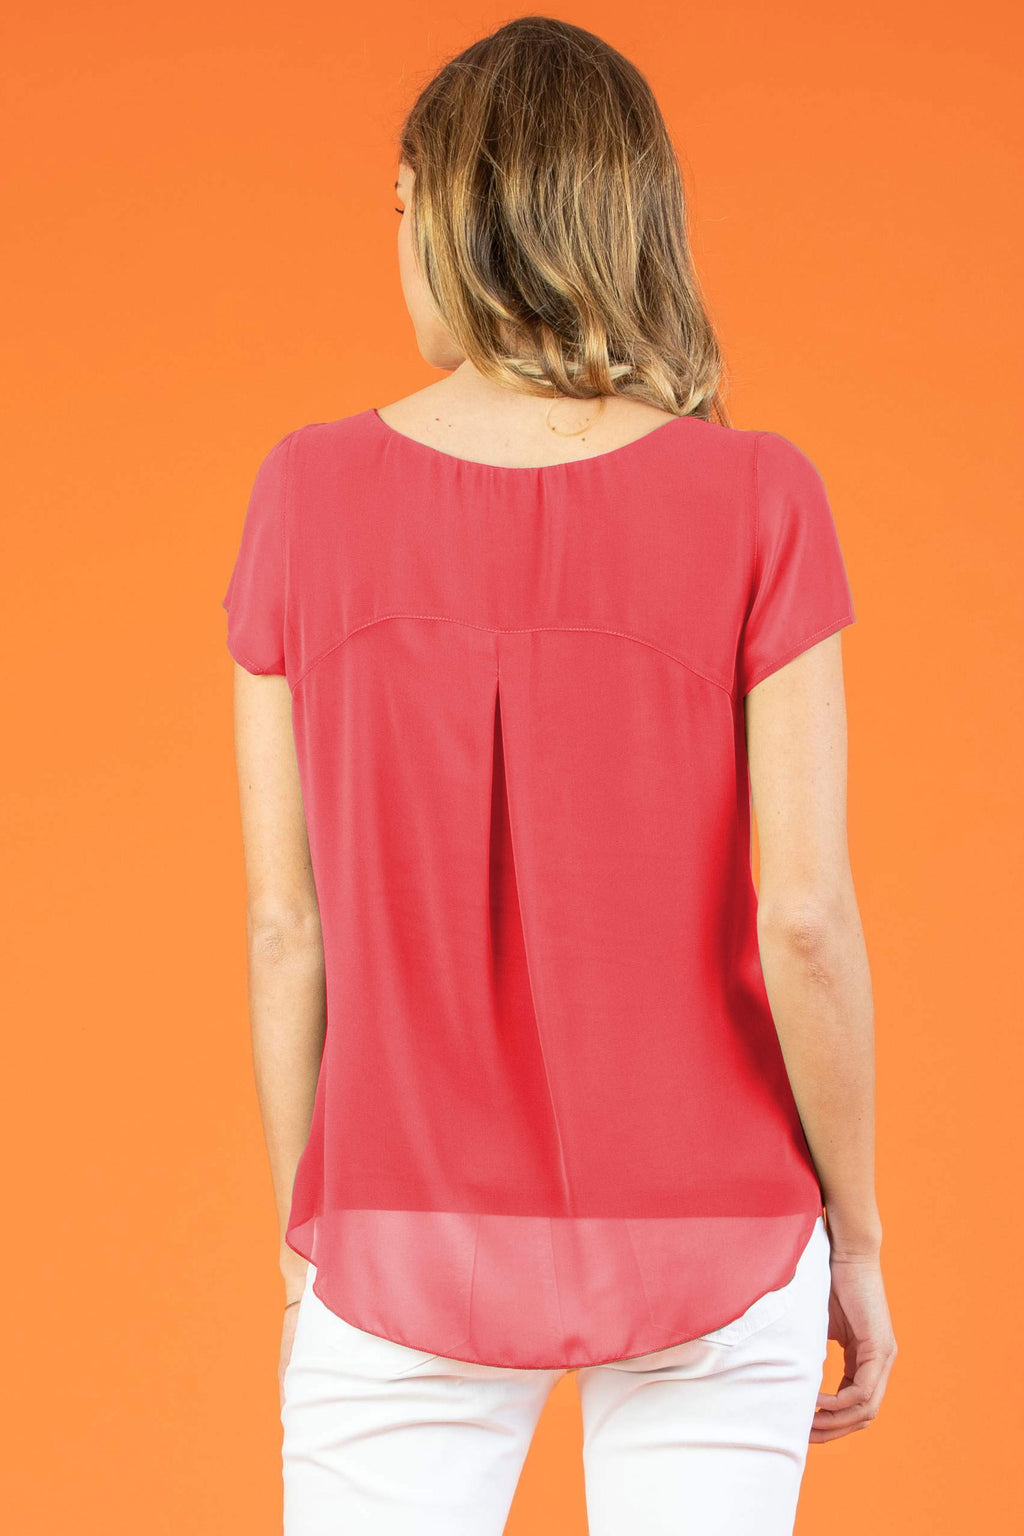 The Georgie Chiffon Maternity Blouse in Coral